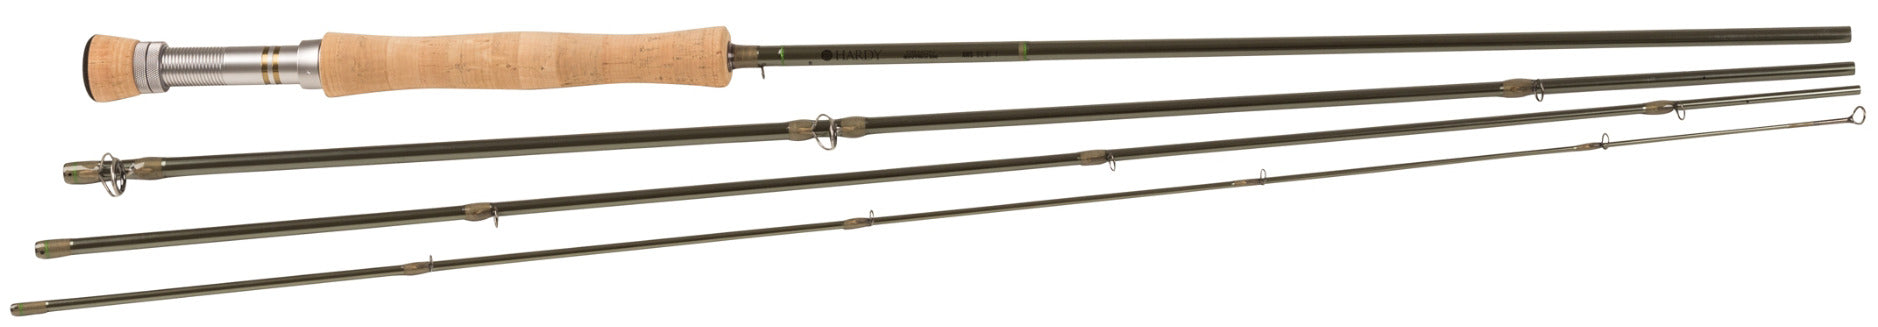 Hardy Demon Sintrix Single Handed Rods